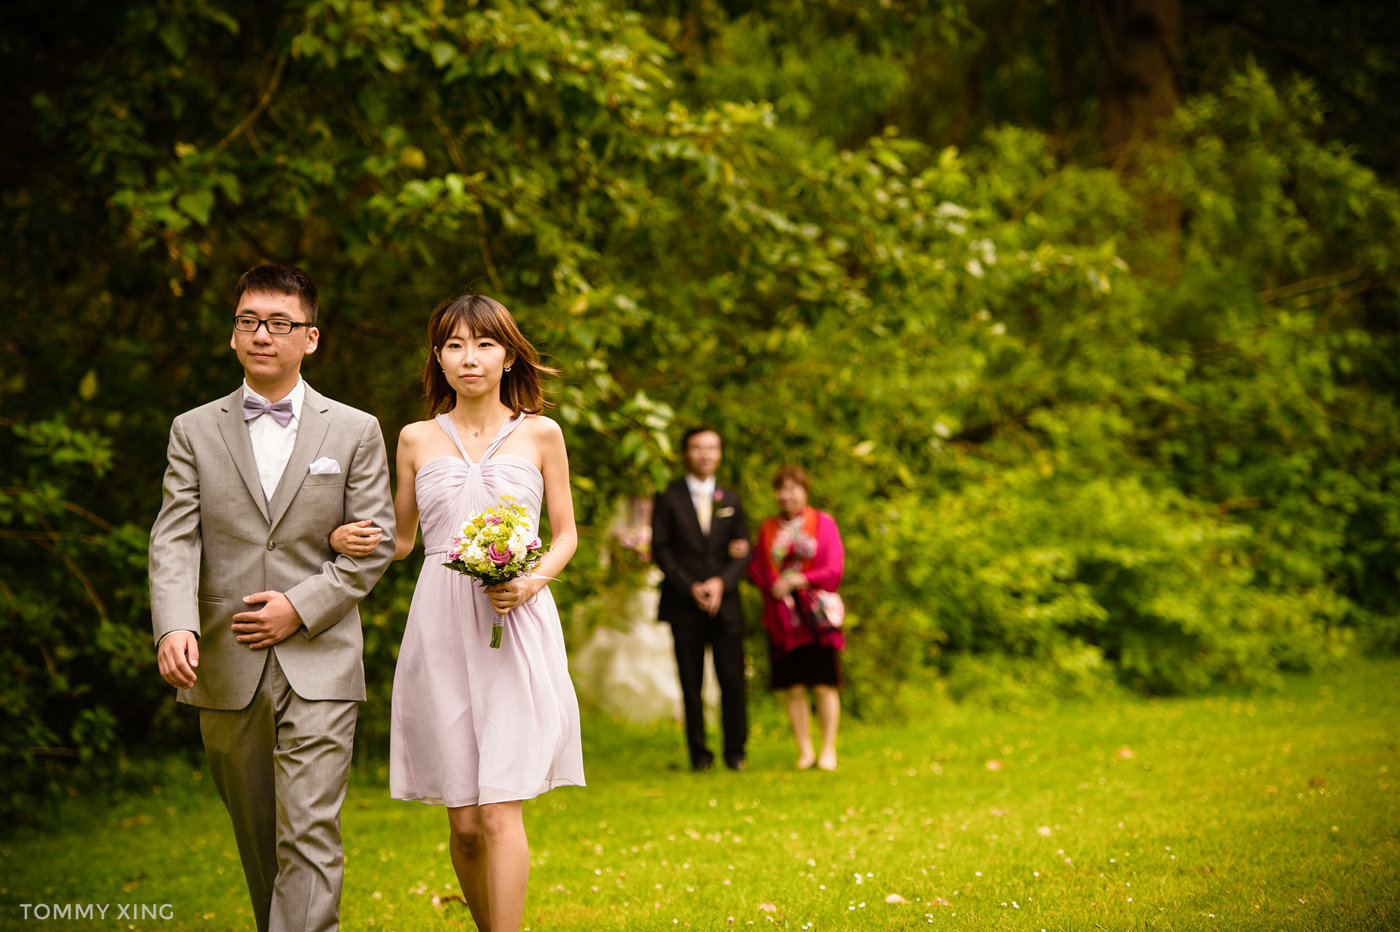 Seattle Wedding and pre wedding Los Angeles Tommy Xing Photography 西雅图洛杉矶旧金山婚礼婚纱照摄影师 064.jpg